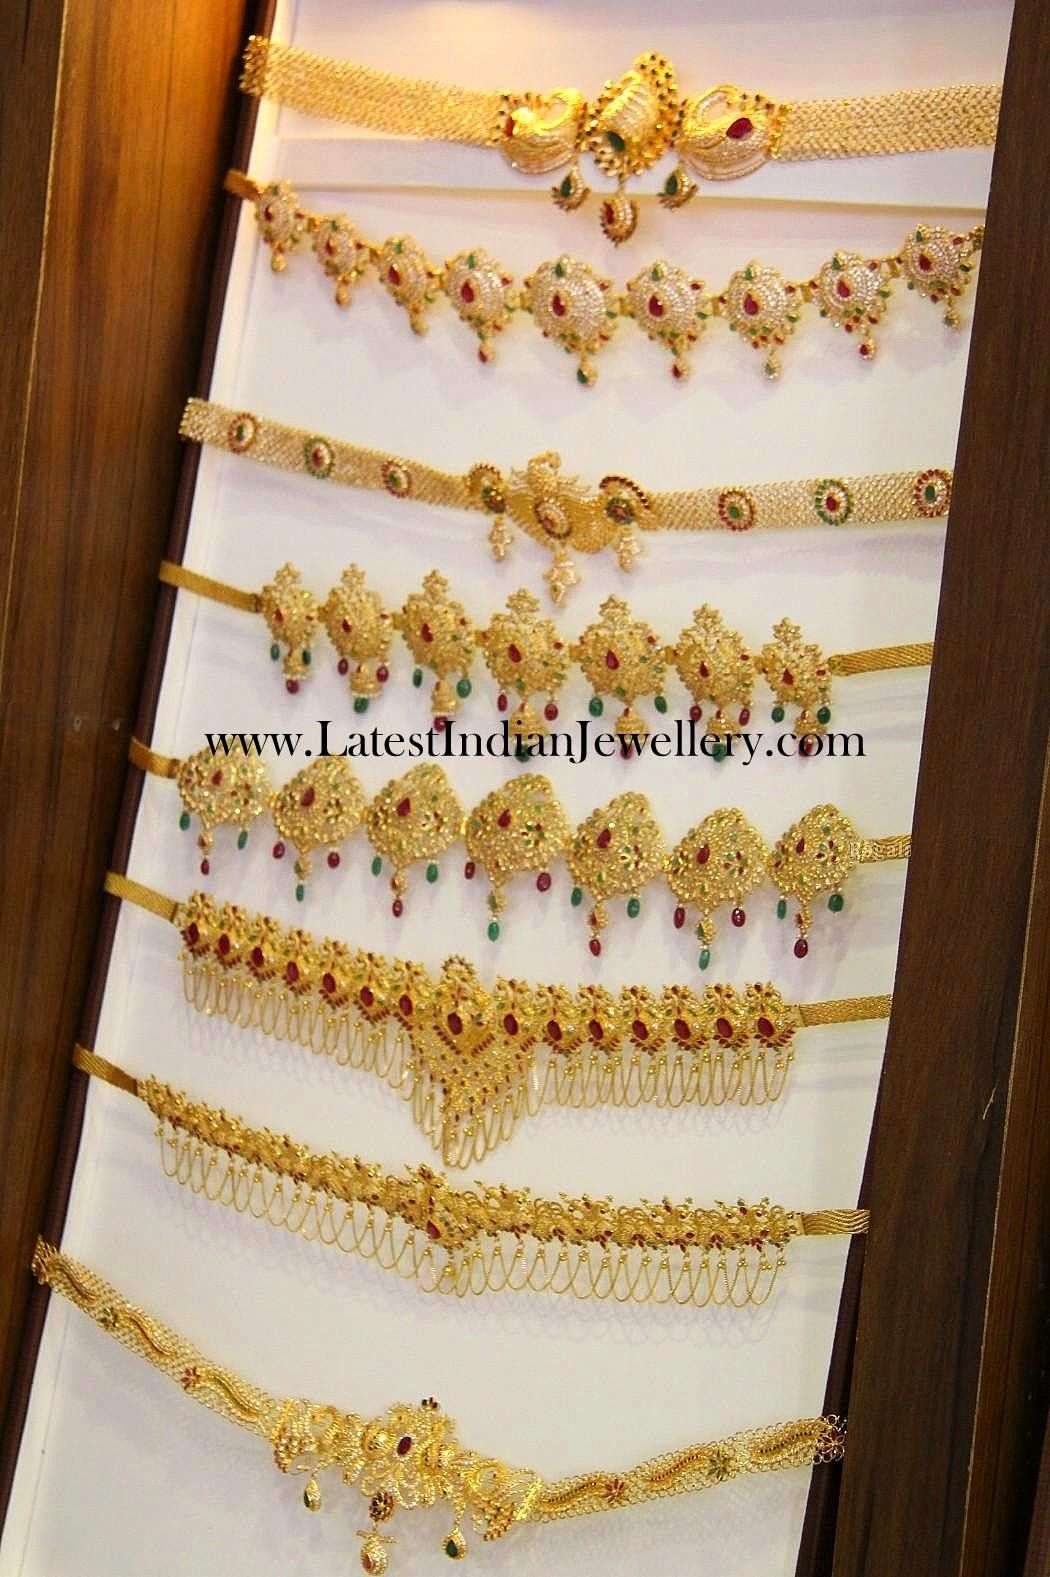 Gold vaddanam oddiyanam kammarpatta waisbelt designs south indian - Indian Jewellery And Clothing Oddiyanam Kammar Patta Waist Belt Gold Vaddanam Waist Belt Pinterest Indian Jewelry Clothing And Jewel